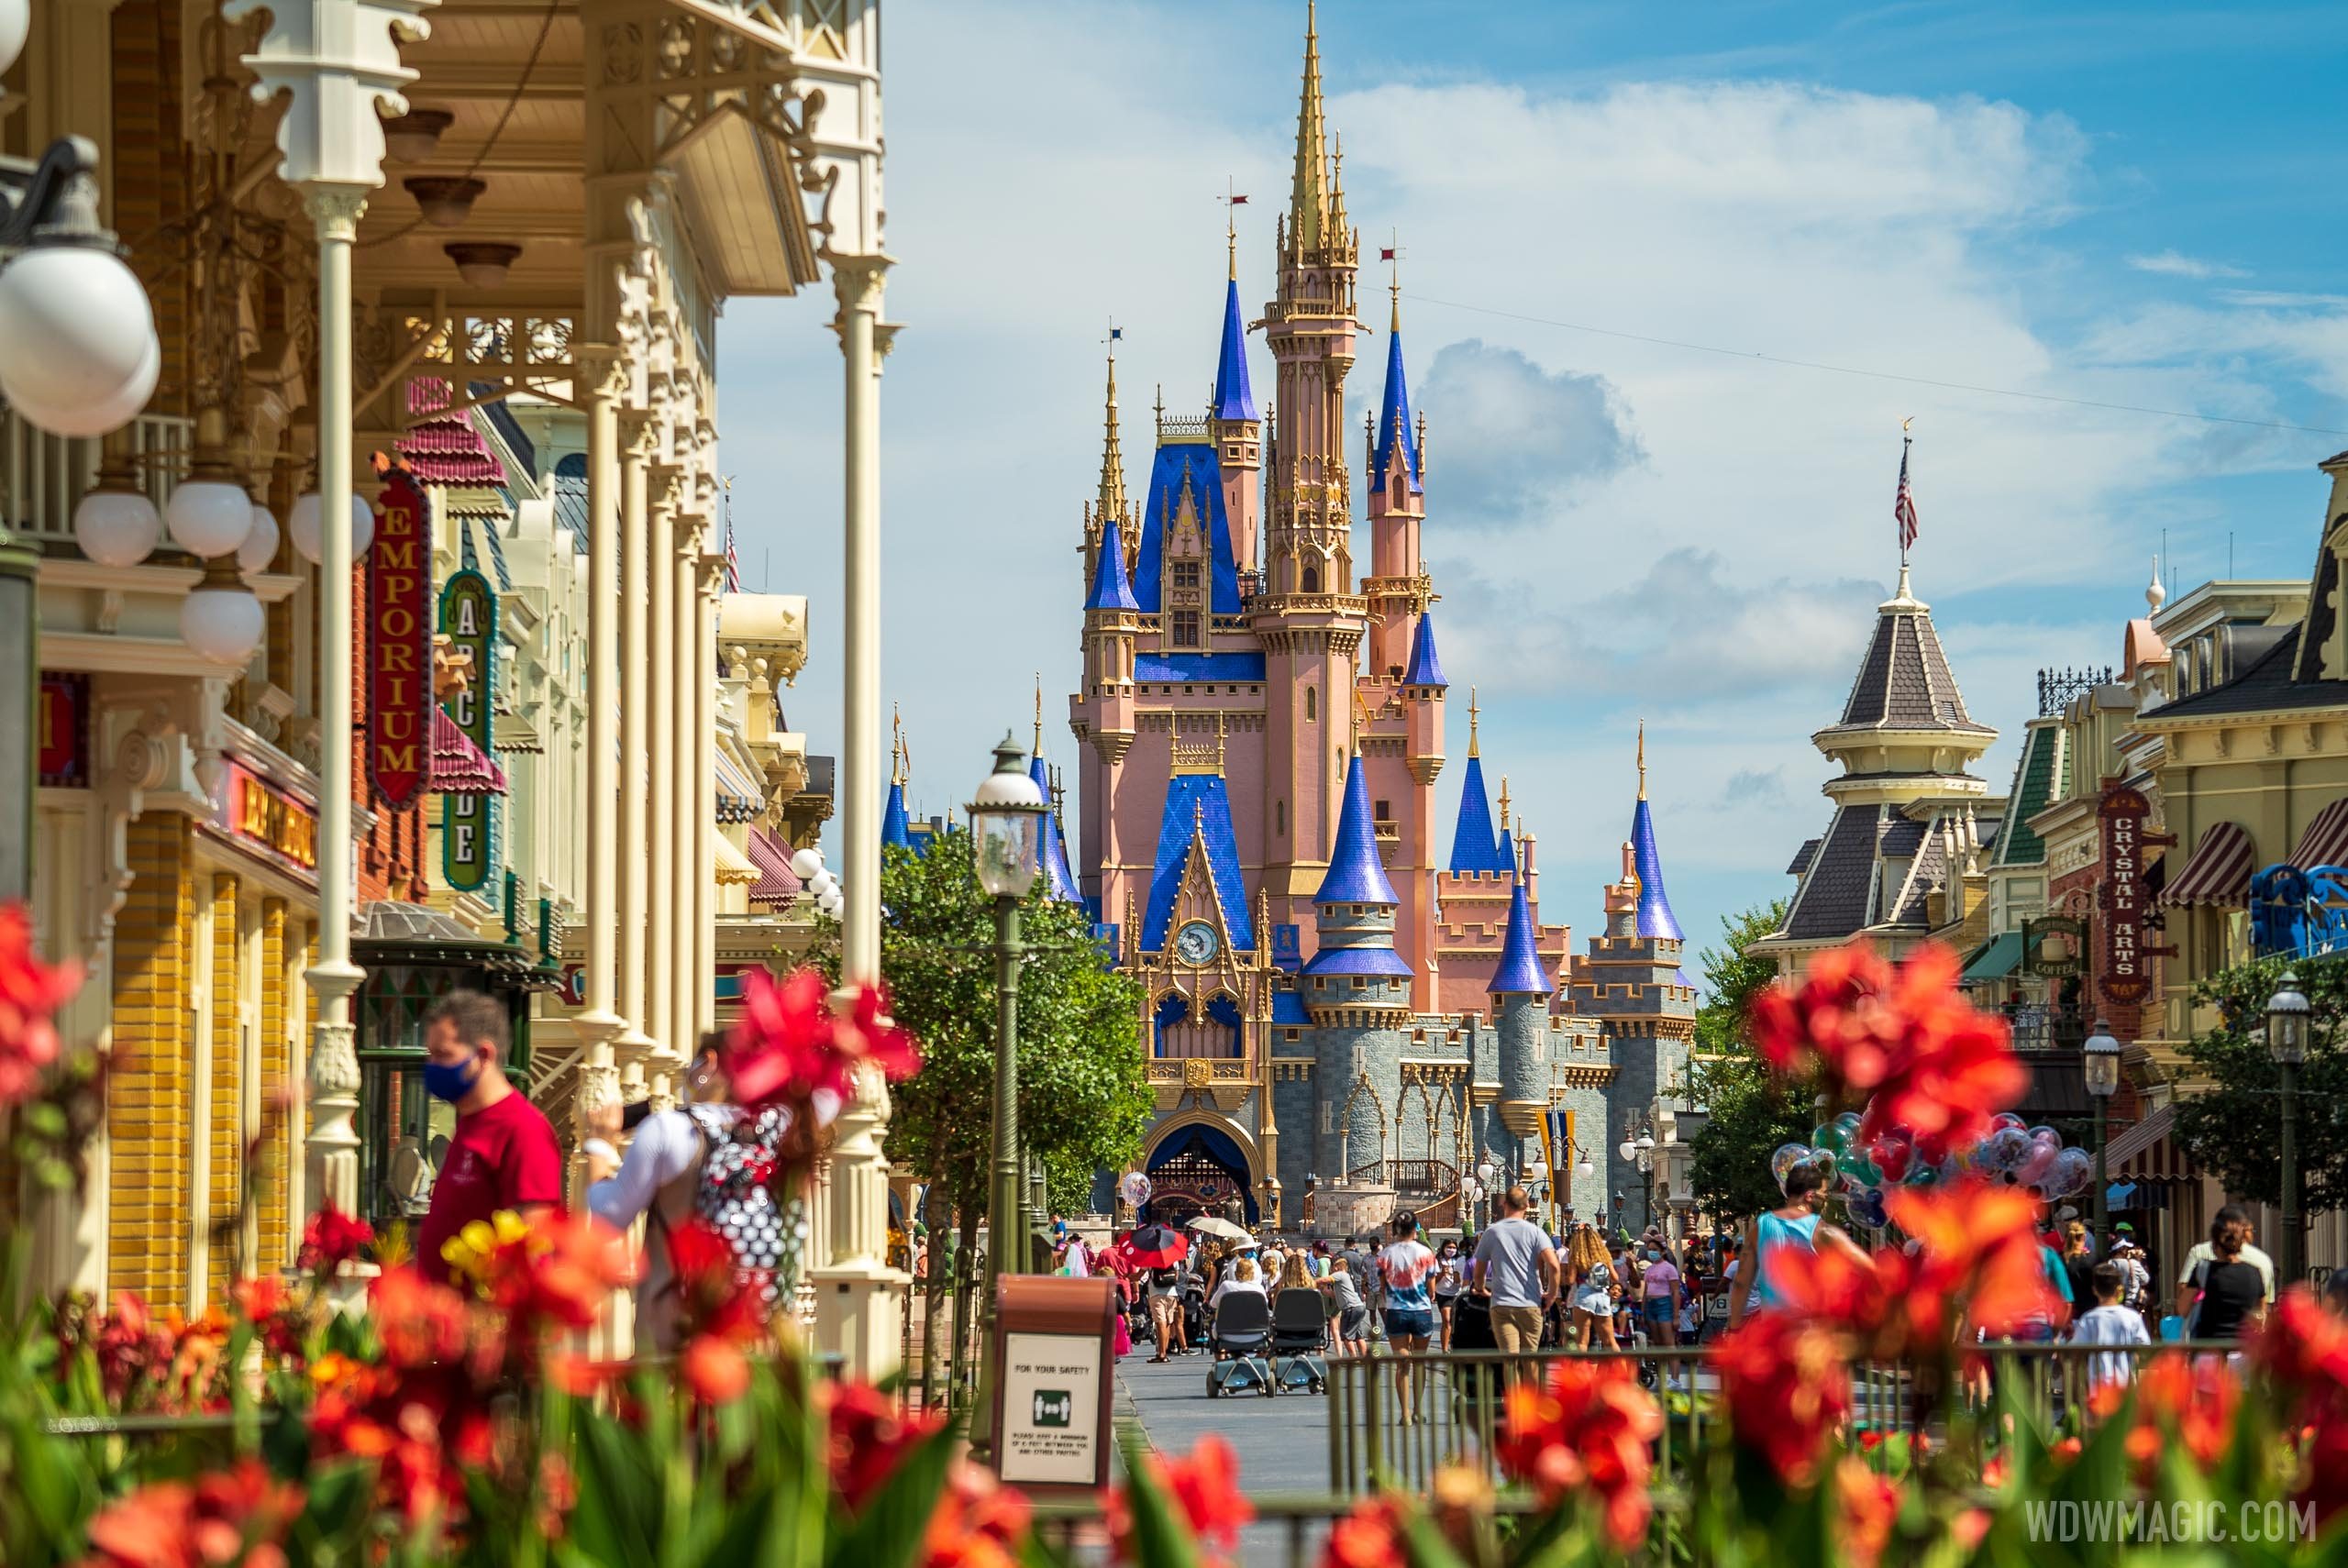 Disney has to annonce any plans to use vaccine passports at Walt Disney World